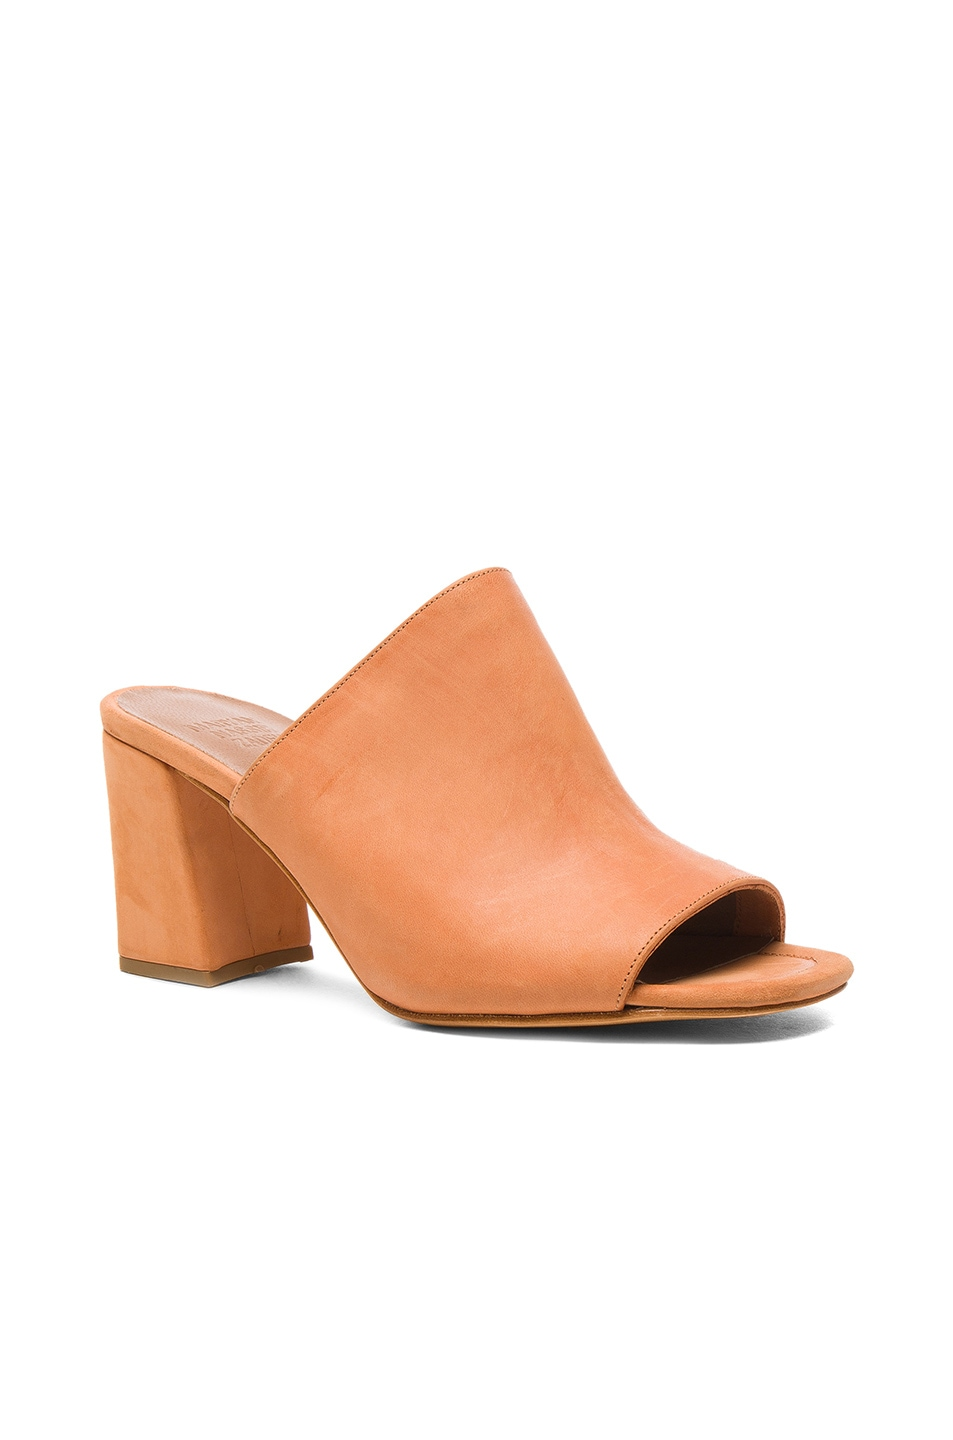 Image 2 of Maryam Nassir Zadeh Leather Penelope Mules in Natural Calf